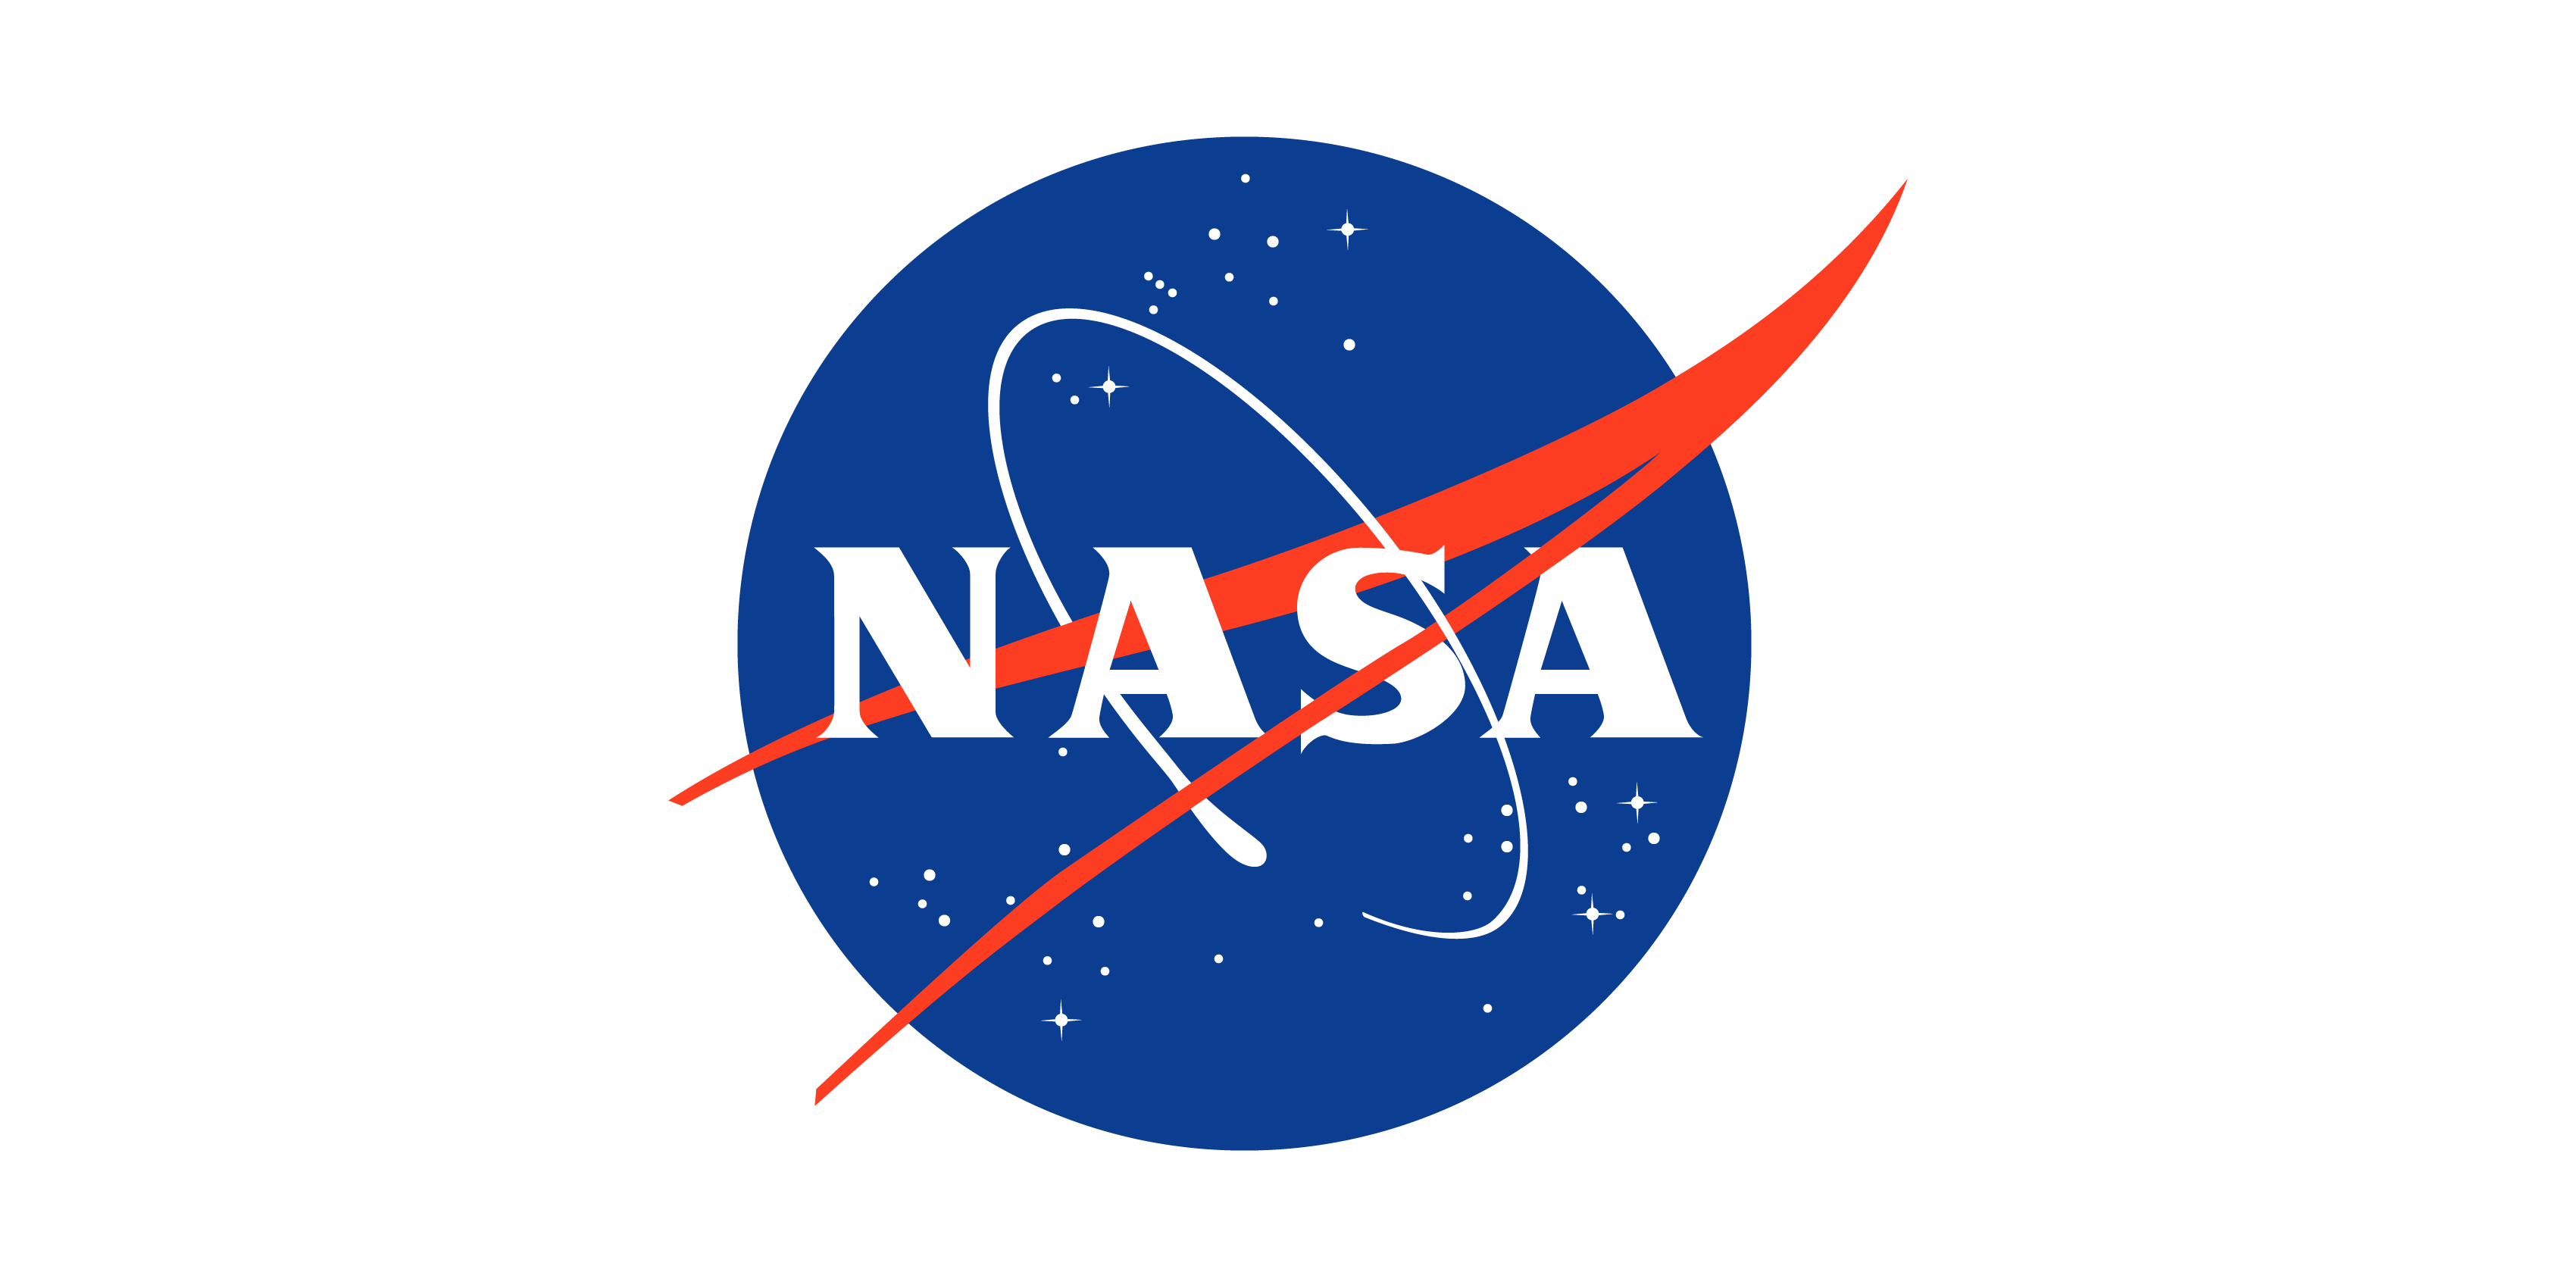 July 29, 1958: NASA Is Formed